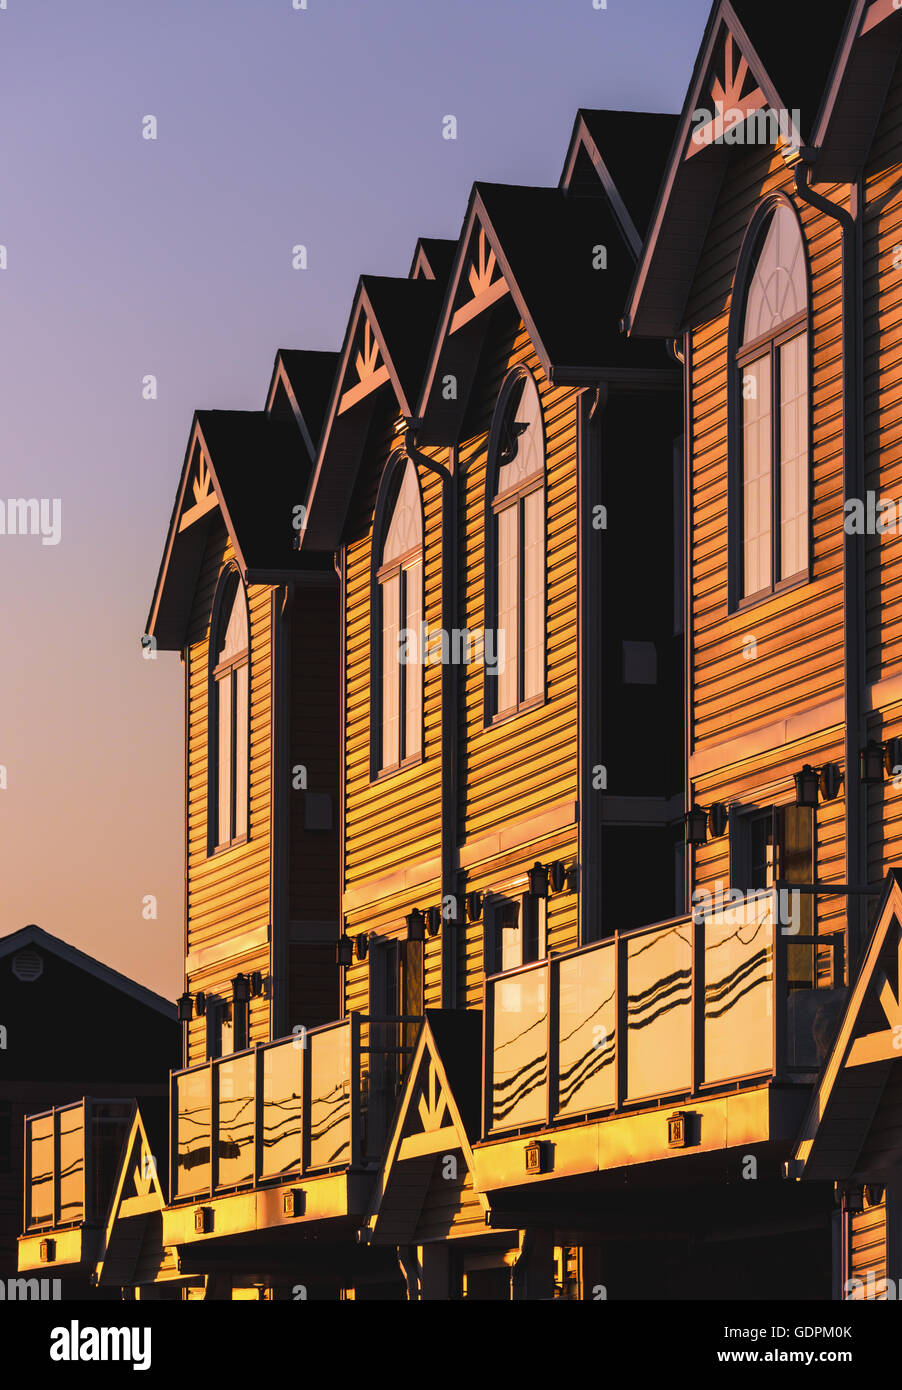 Evening sun shining on a row of townhouses or condo - Stock Image